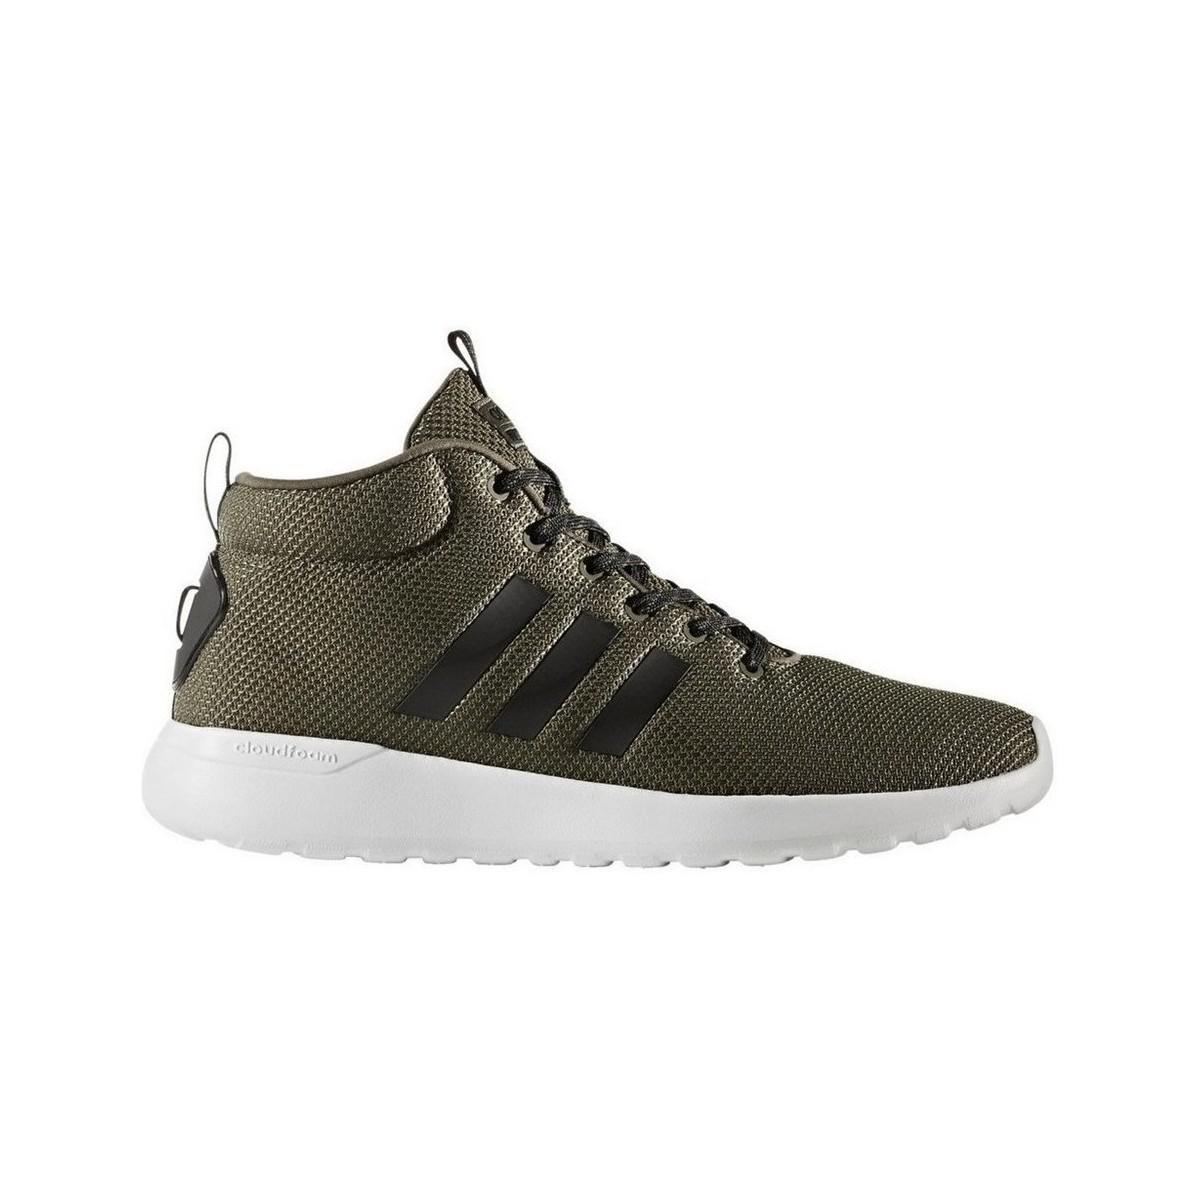 info for 82417 a5e81 sweden adidas neo cloudfoam cf lite racer mid mens shoes high top 72c7d  070ae